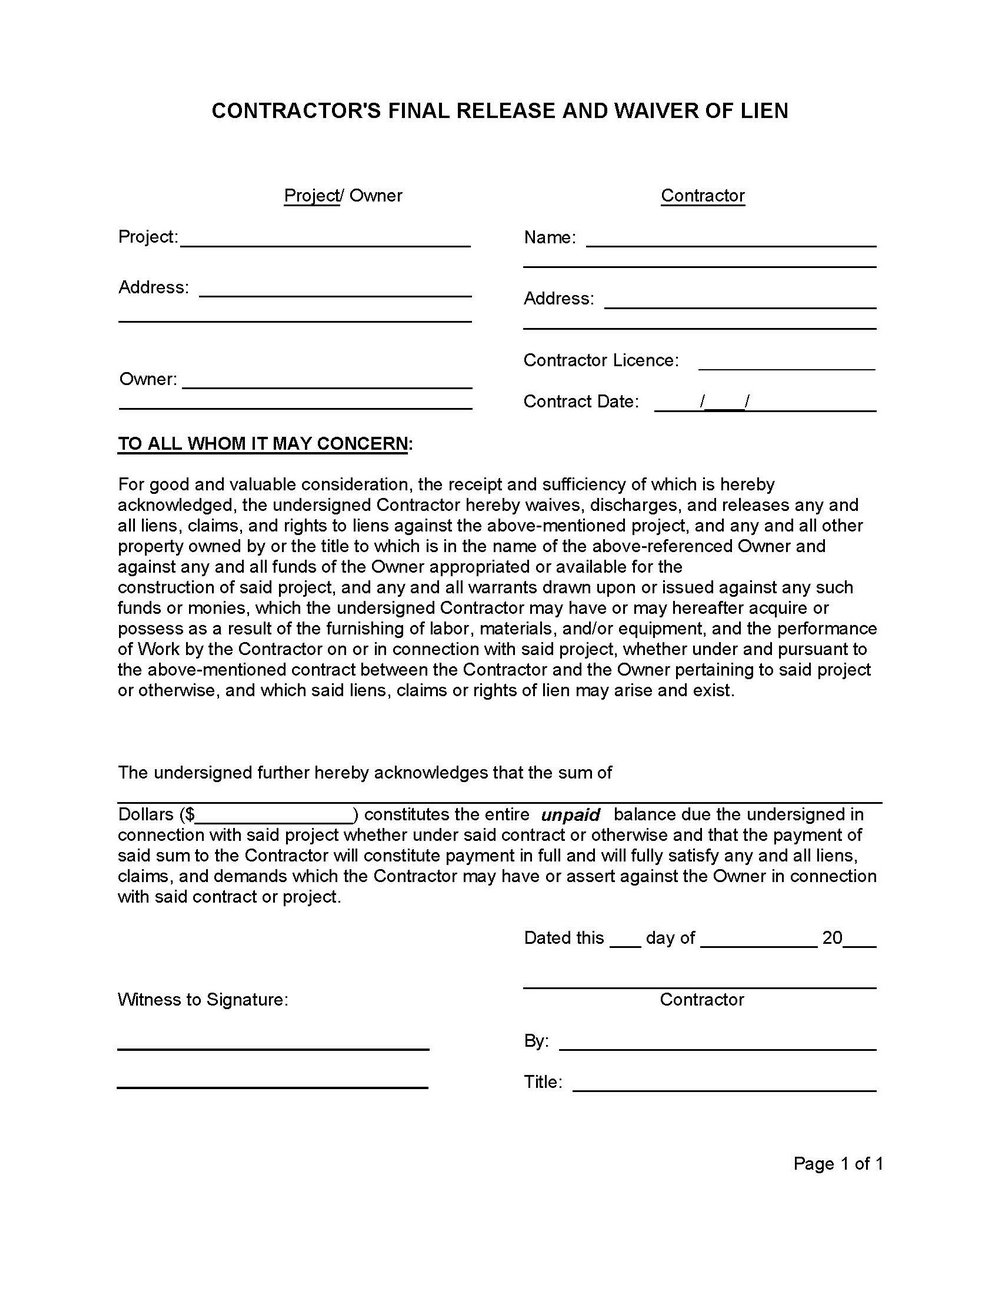 Lien Waiver Forms